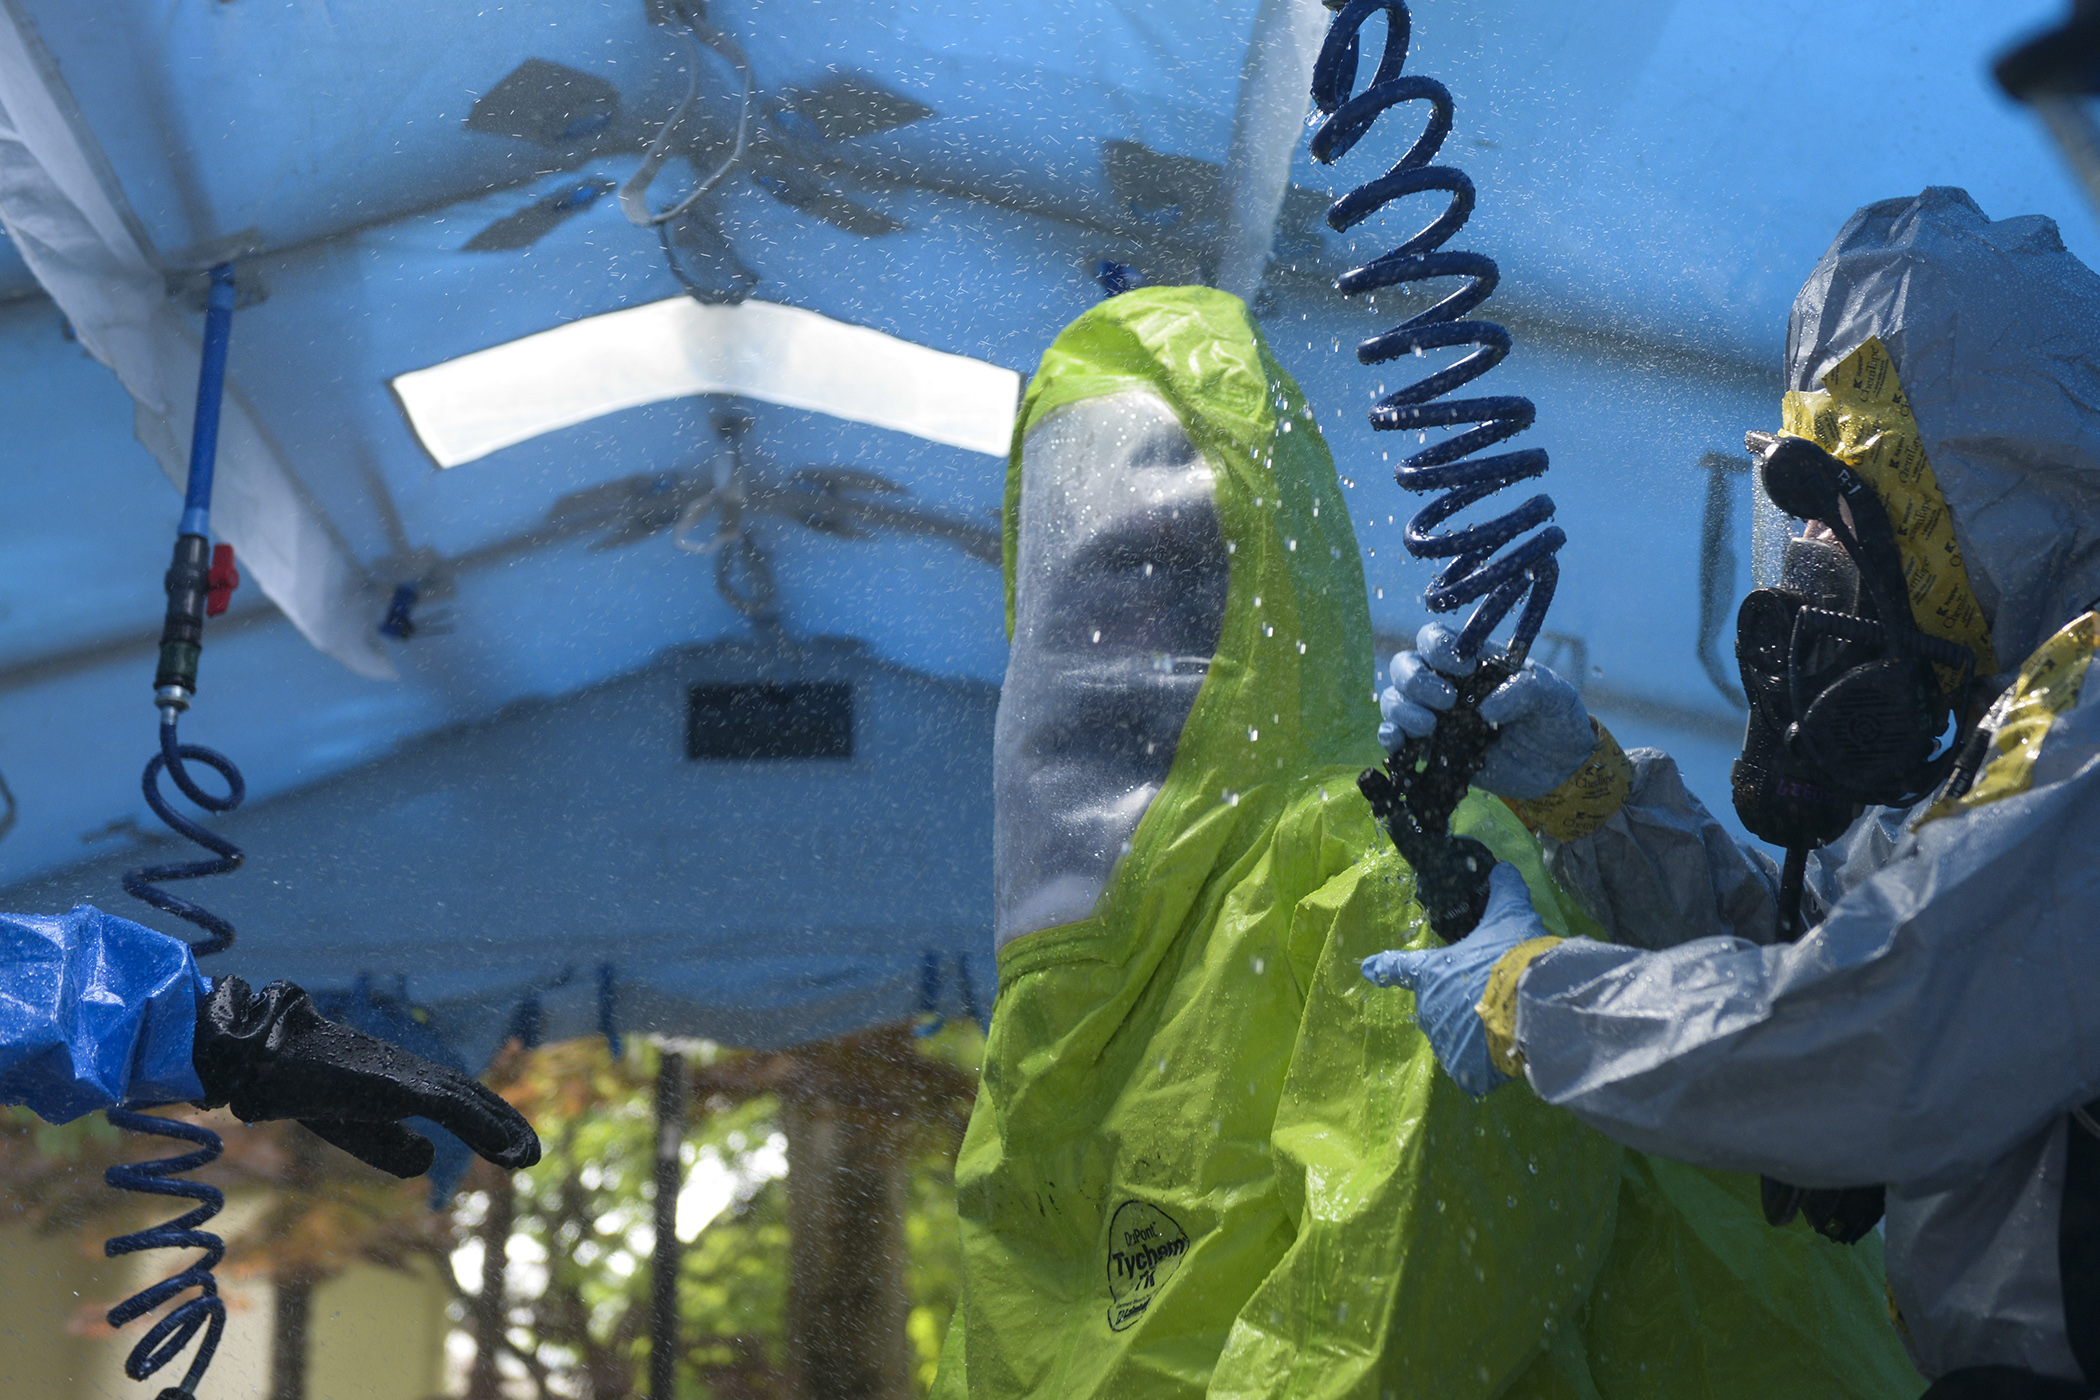 Senior Airman Craig Deacon, left, 374th Civil Engineer Squadron driver operator, passes through a decontamination shower tent, May 6, 2015, at Yokota Air Base, Japan. Emergency responders passed through the tent after coming into contact with simulated hazardous materials. (U.S. Air Force photo by Airman 1st Class Elizabeth Baker/Released)